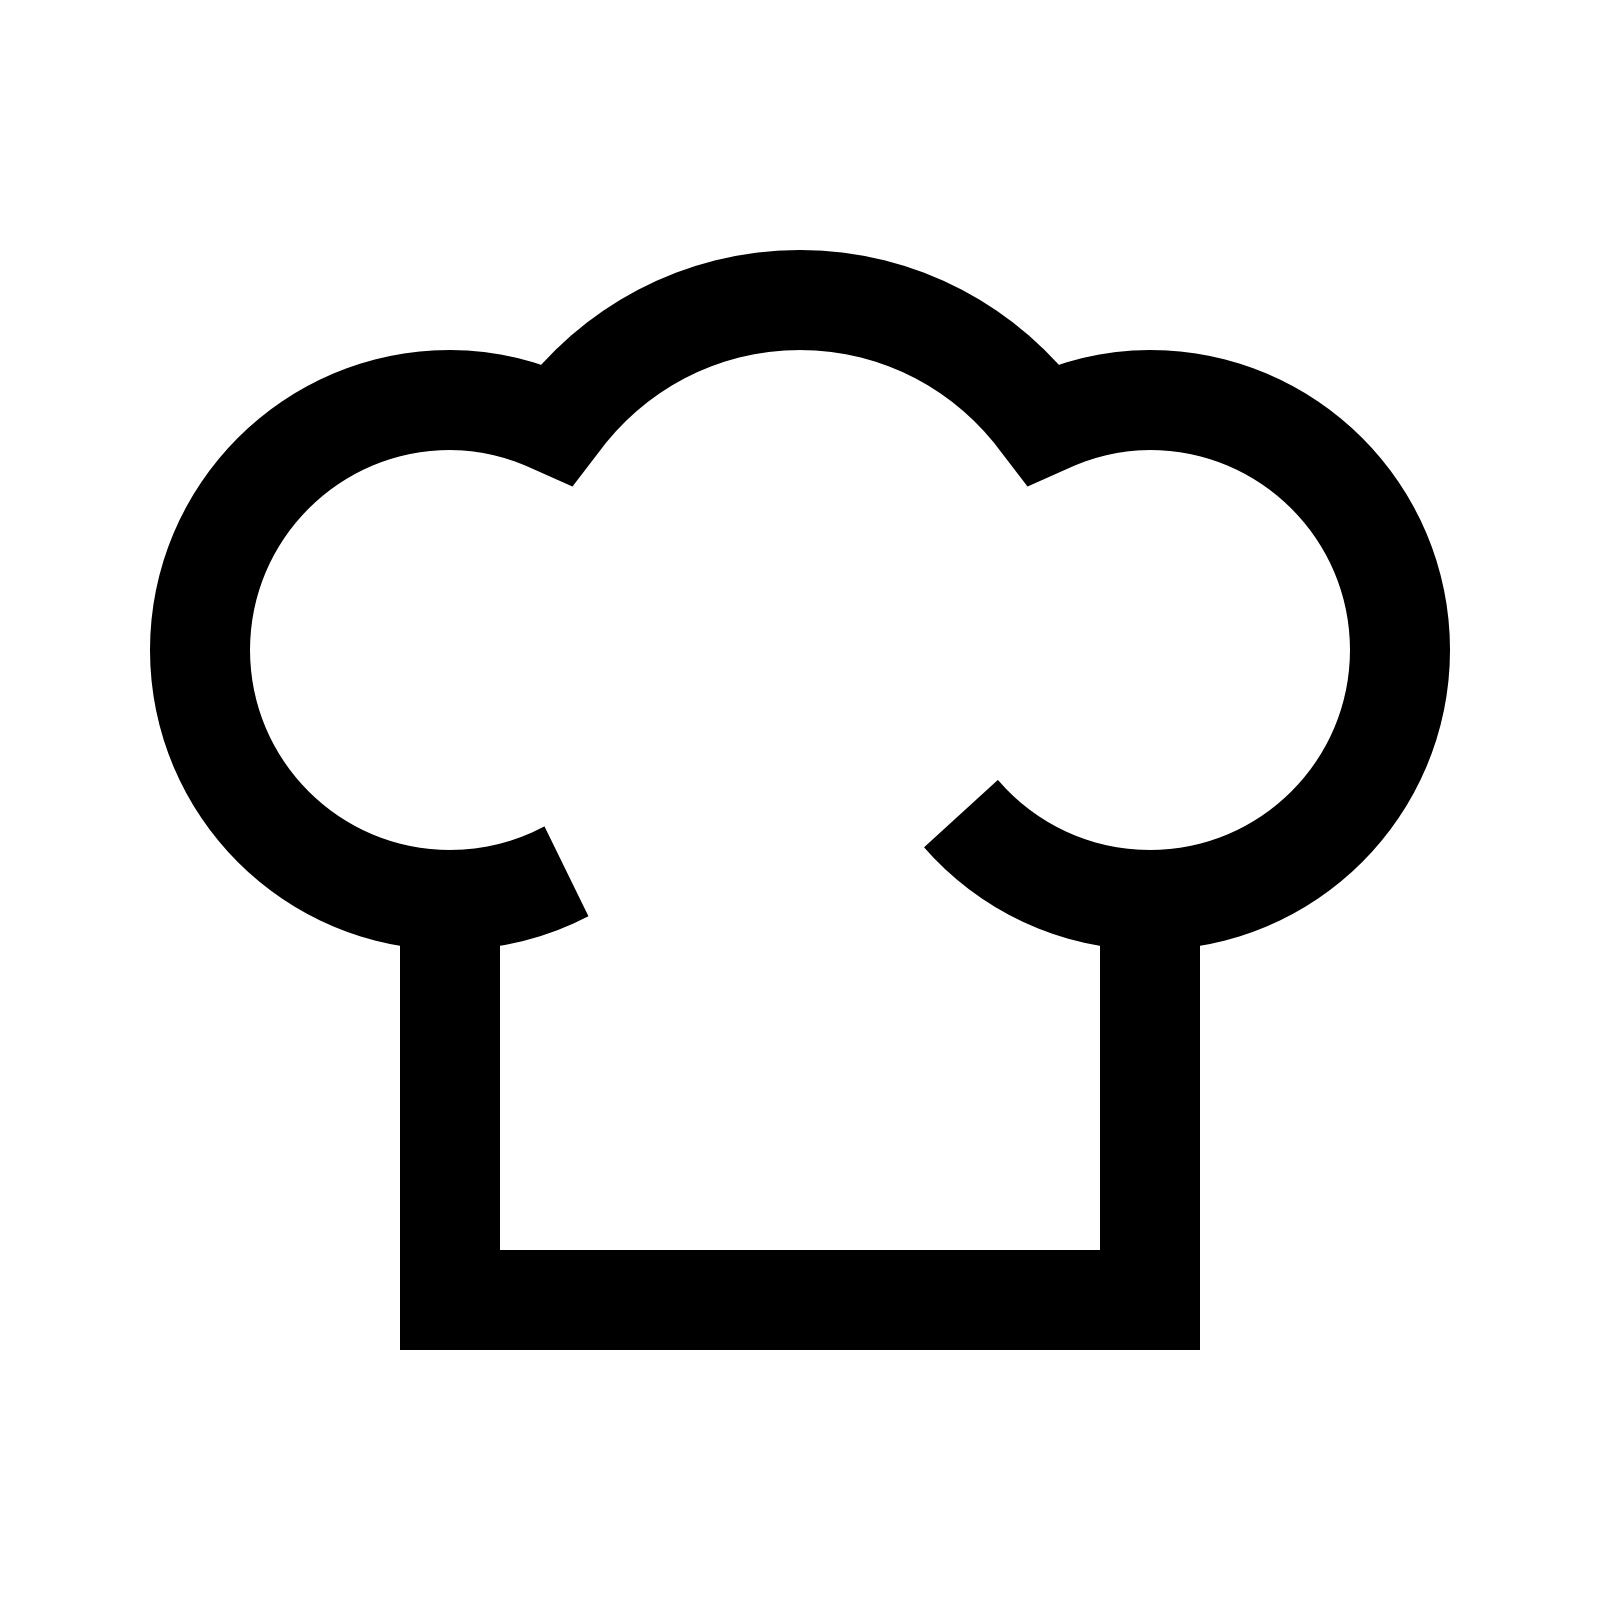 Hat clipart cooking. Chef cap png image